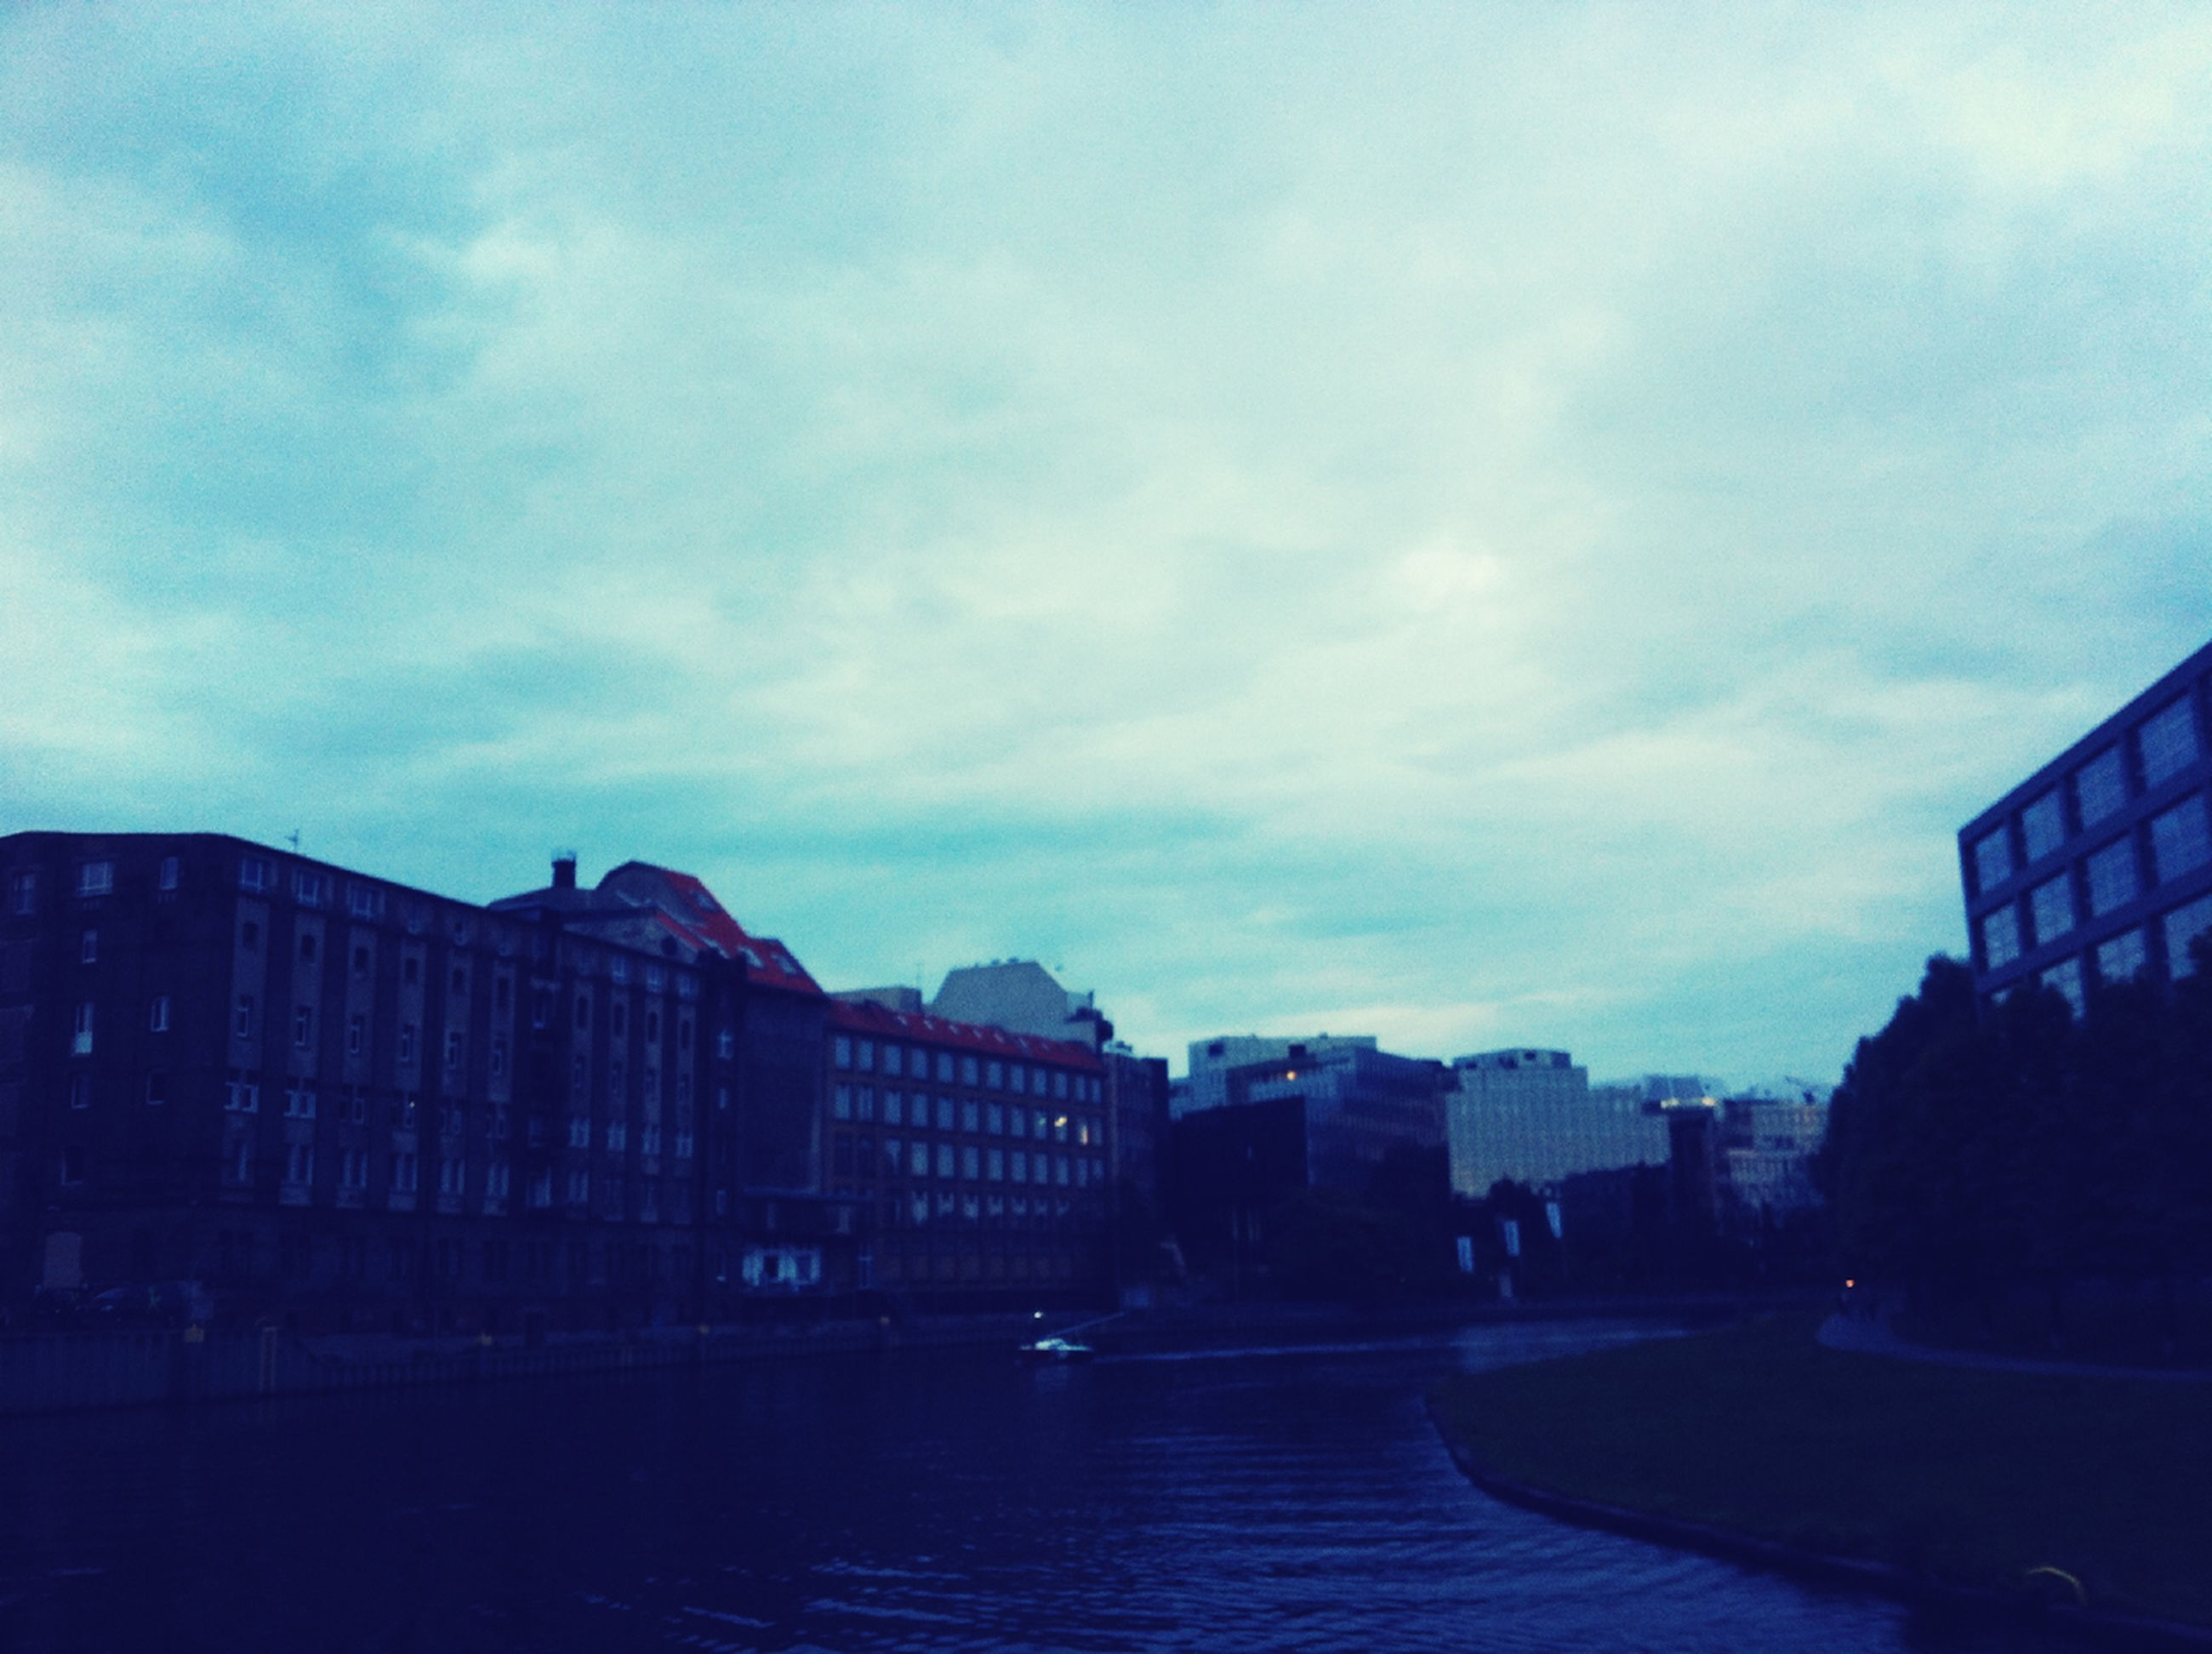 architecture, building exterior, built structure, sky, water, waterfront, cloud - sky, city, river, cloudy, cloud, building, residential building, dusk, residential structure, outdoors, reflection, no people, canal, day